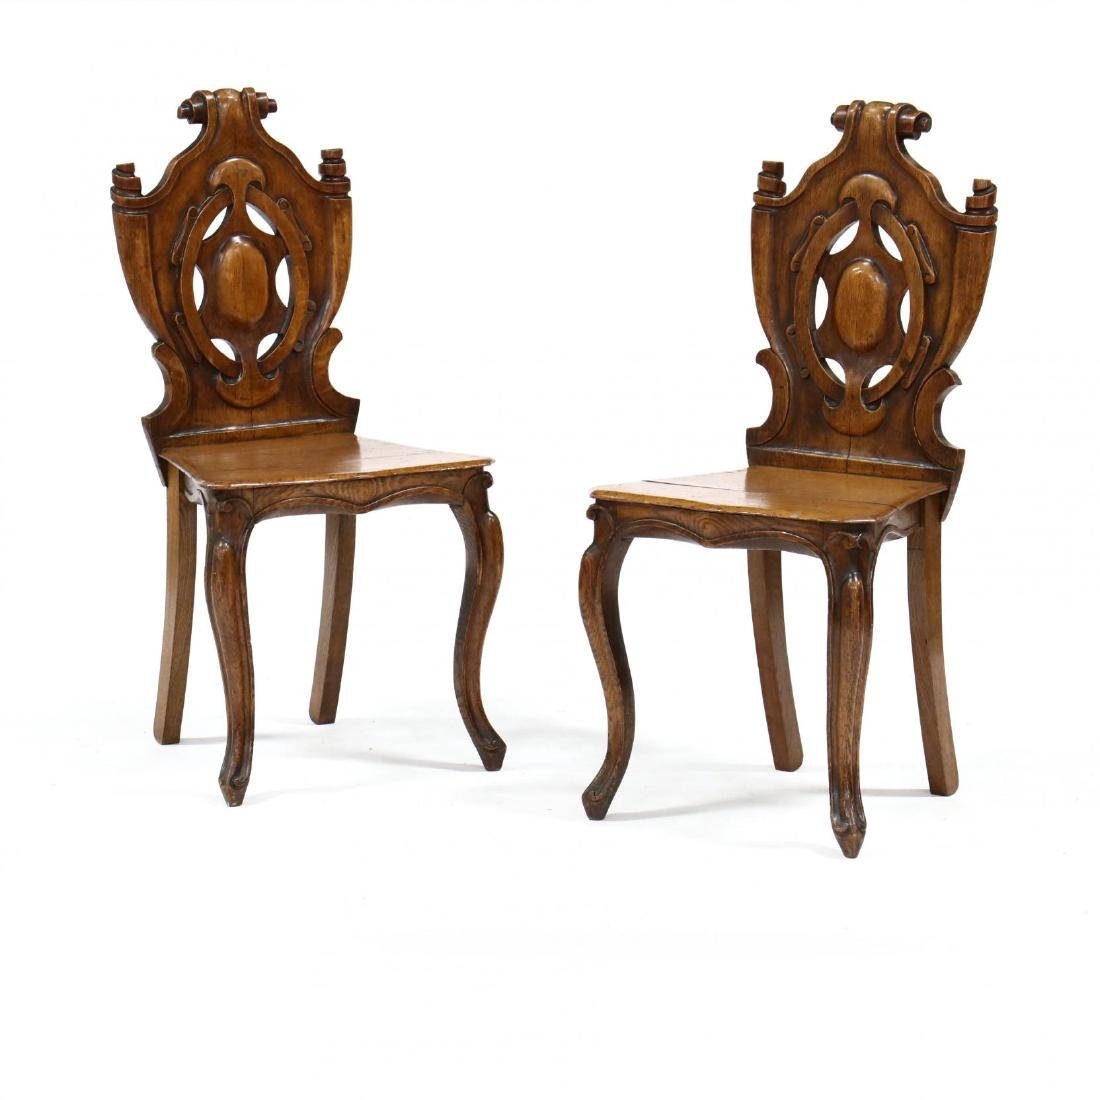 Pair of English Carved Oak Hall Chairs